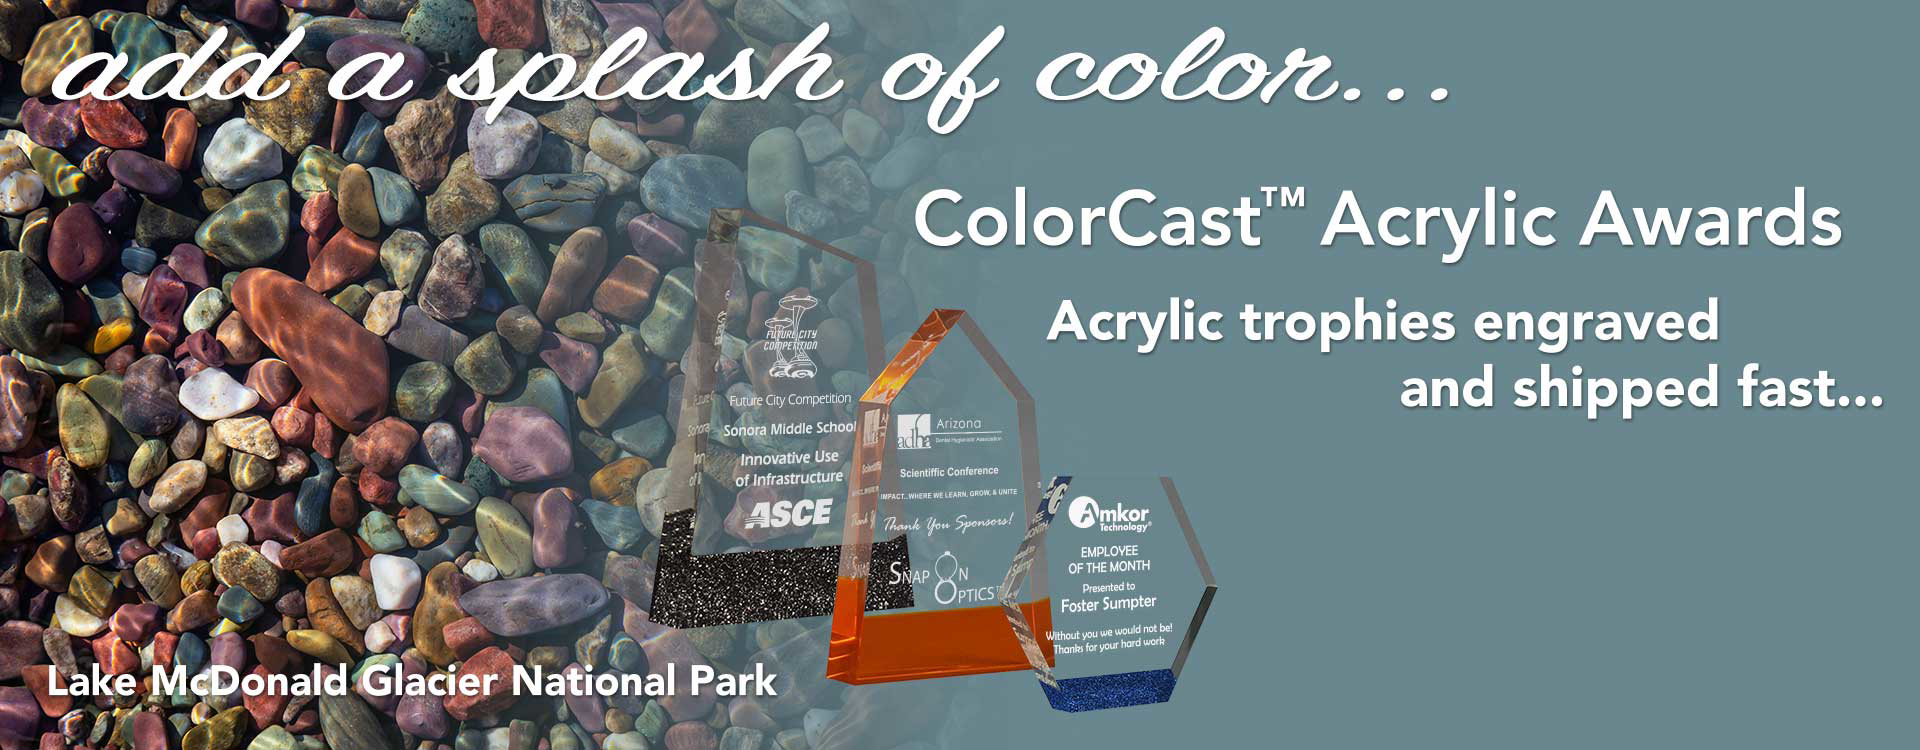 Three colorful ColorCast™ Acrylic Awards with text — Acrylic trophies engraved and shipped fast - add a splash of color...